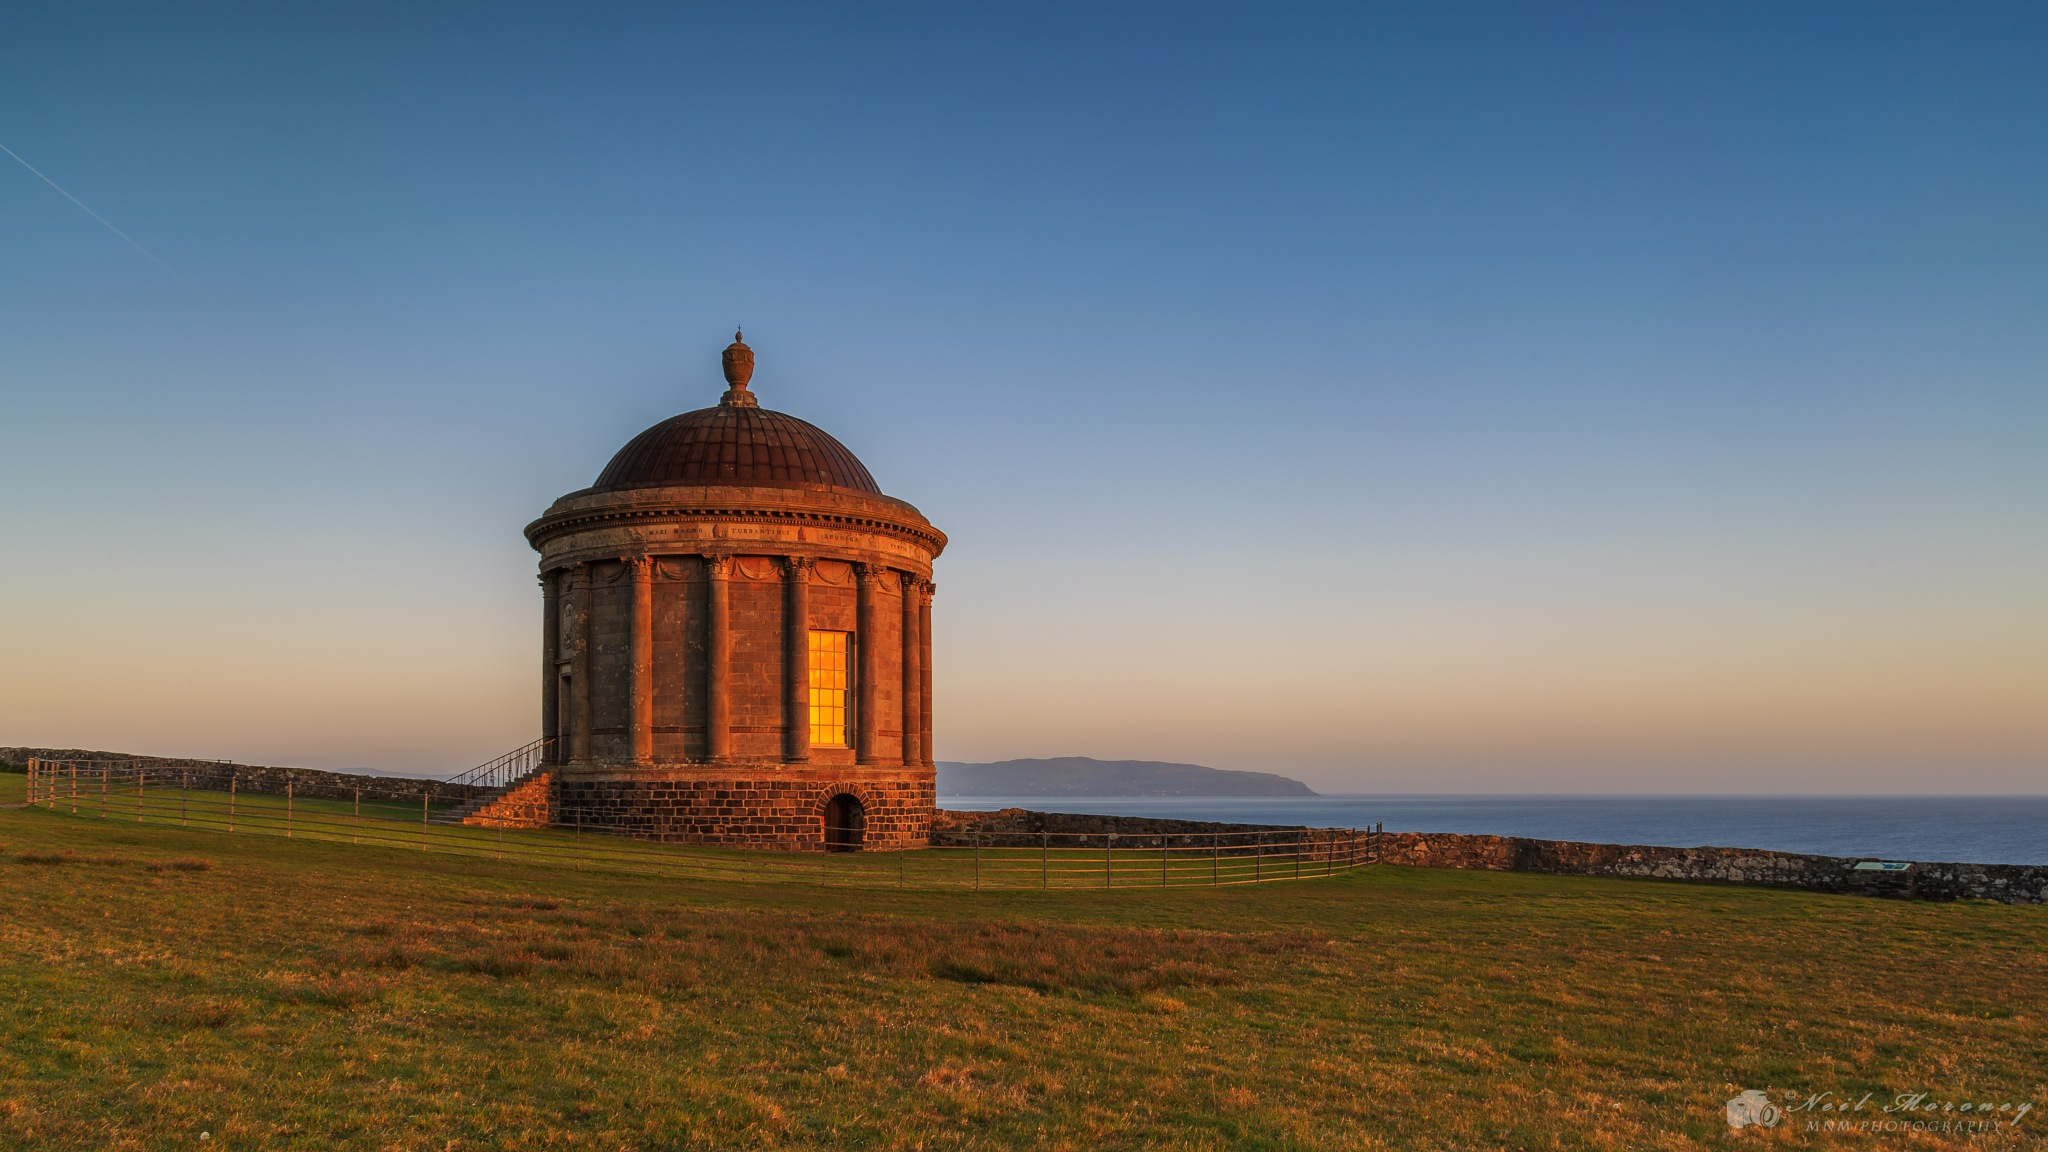 Sunrise at the Temple. by Neil Moroney